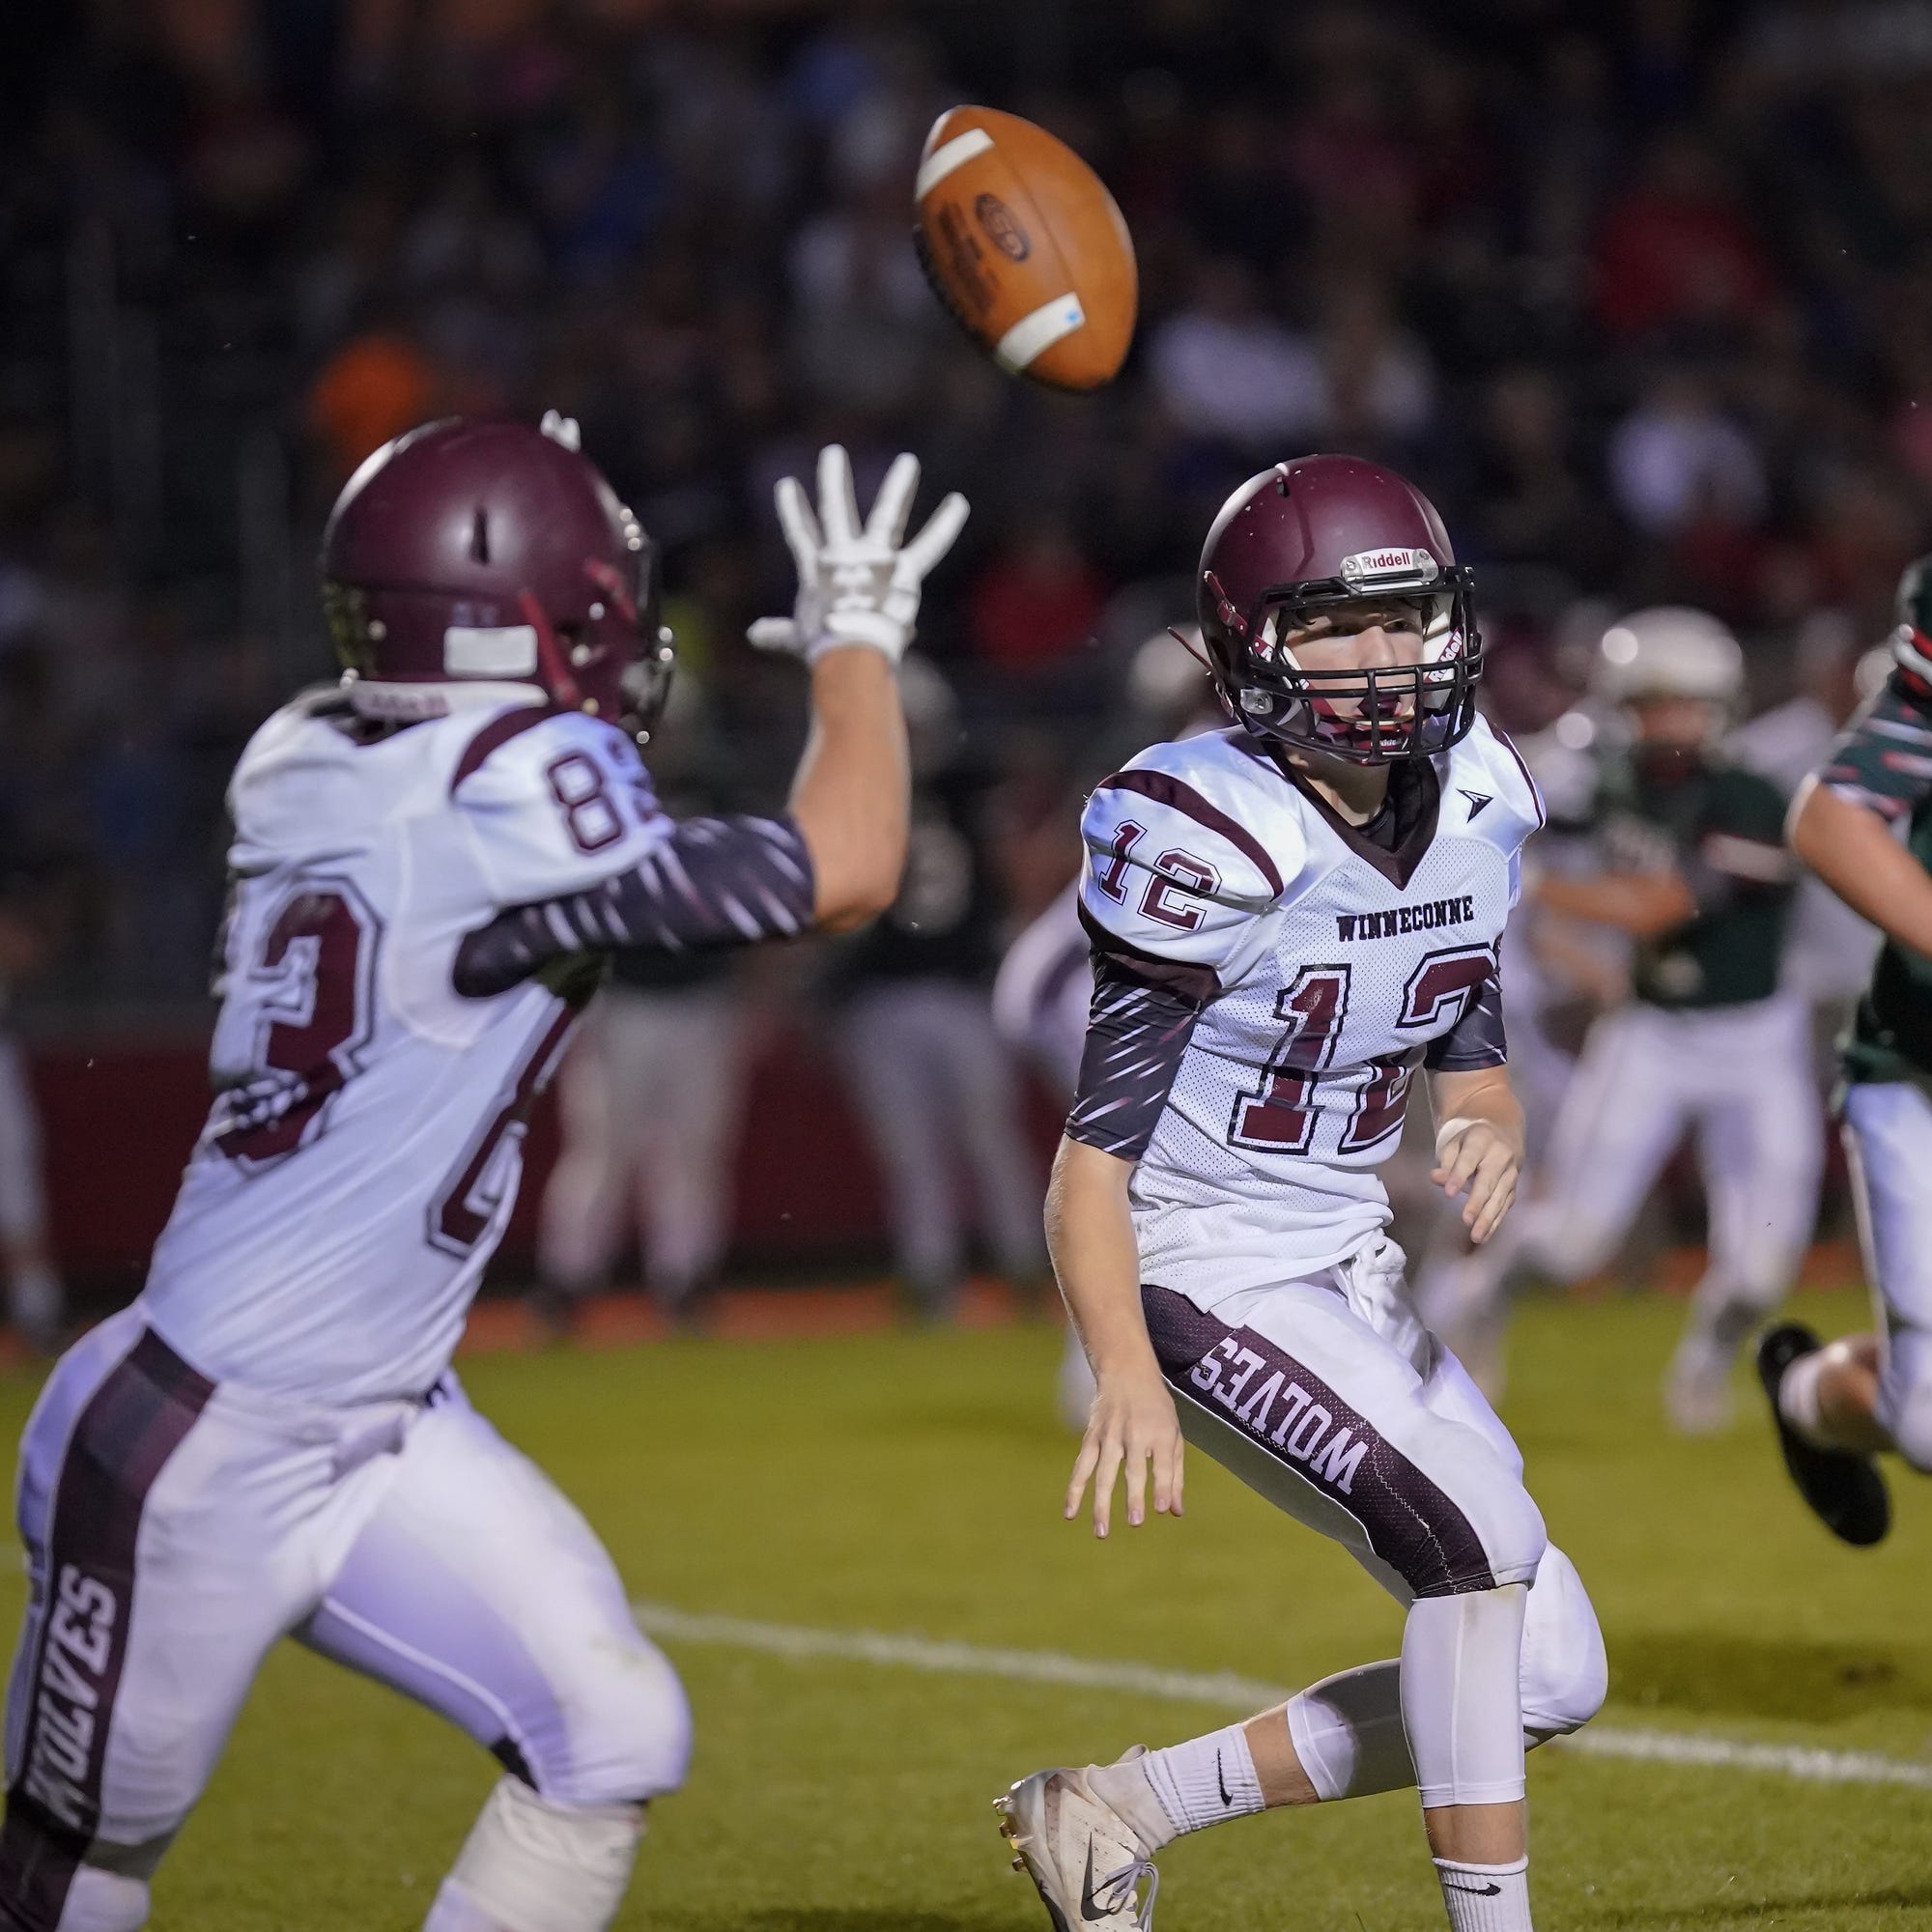 High school football: Conference rivals Berlin, Winneconne go down to final seconds